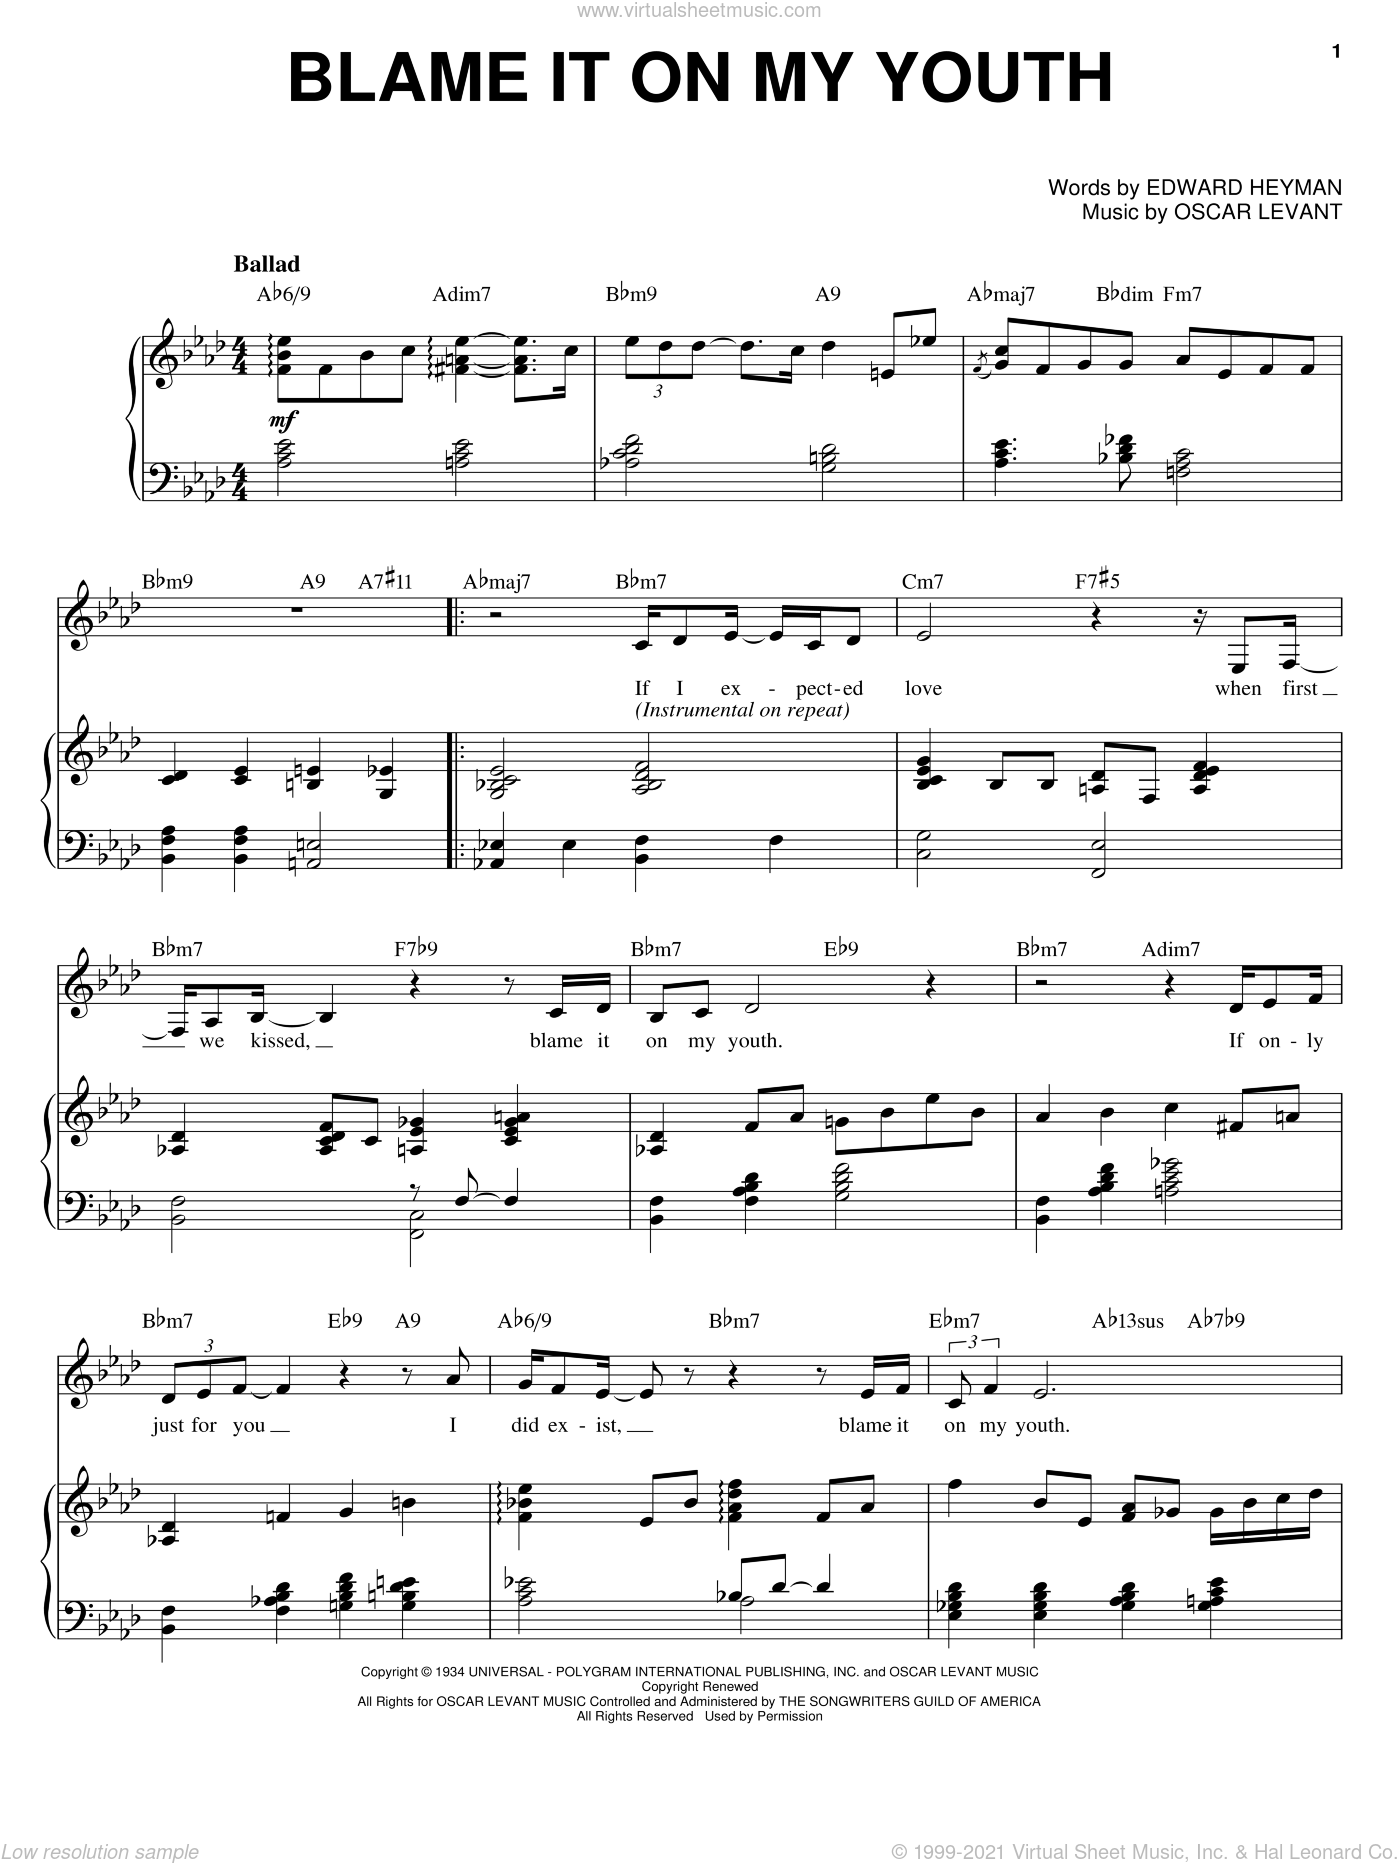 Blame It On My Youth sheet music for voice, piano or guitar by Karrin Allyson, Connie Francis, Jamie Cullum, Edward Heyman and Oscar Levant, intermediate skill level